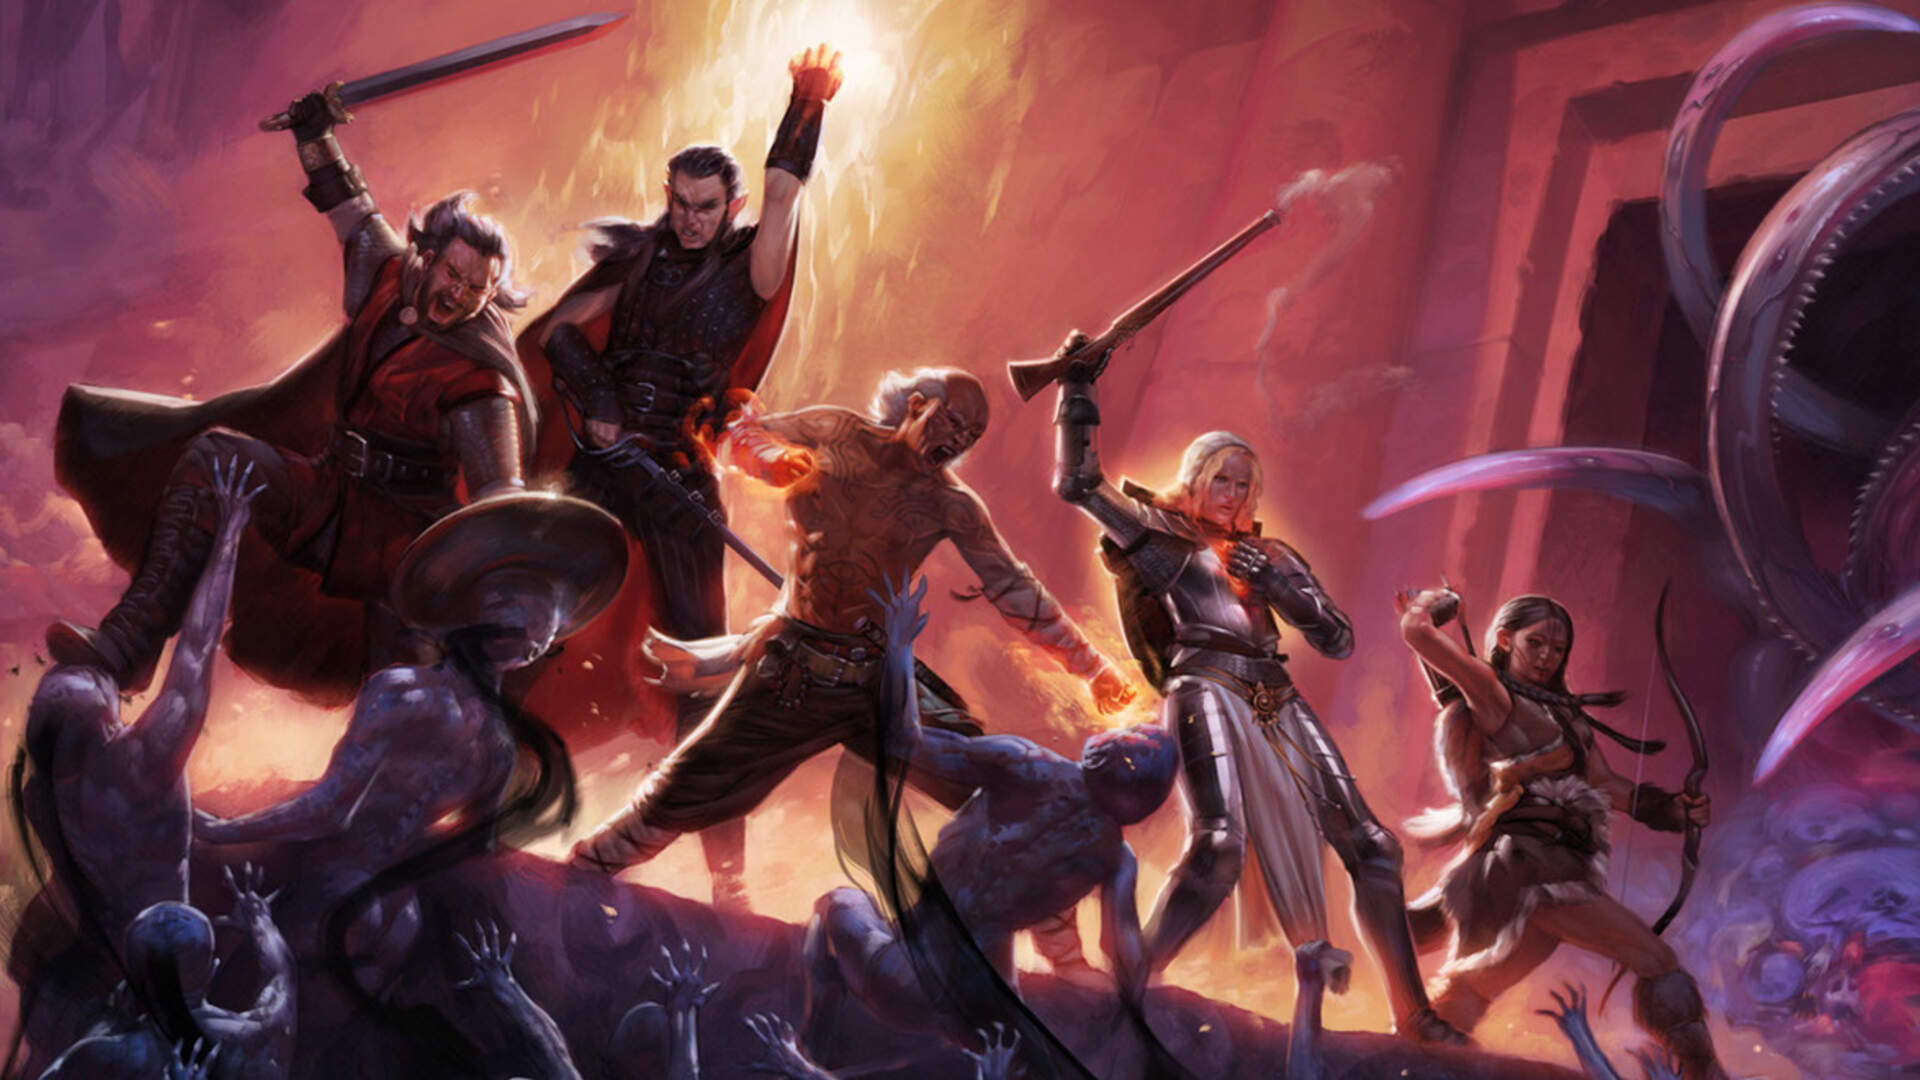 Pillars of Eternity Review: Obsidian's Best RPG to Date